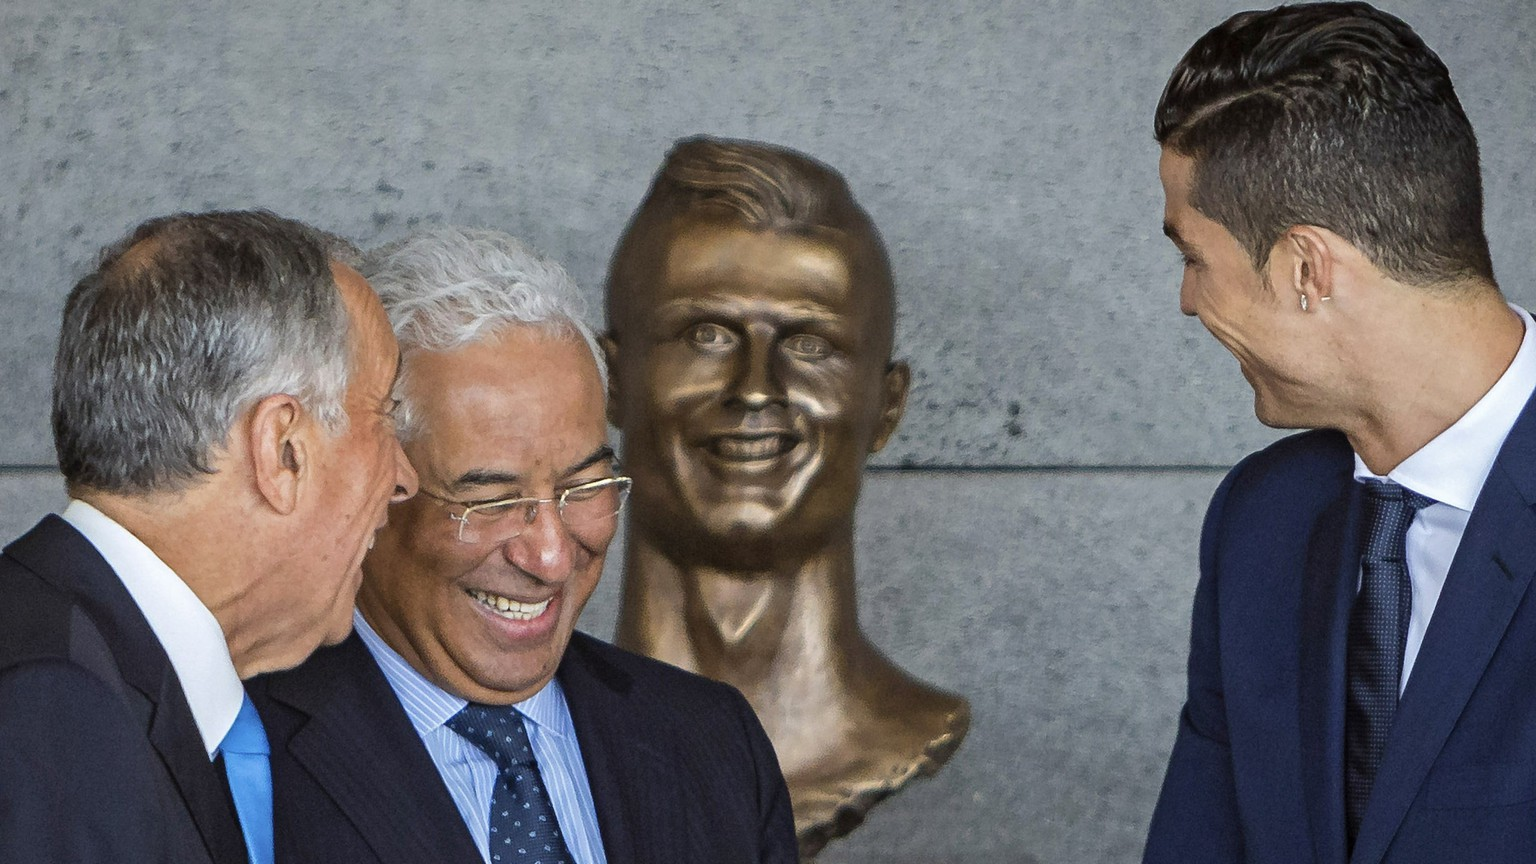 epa05877458 (L-R) Portuguese President Marcelo Rebelo de Sousa, Portuguese Prime Minister Antonio Costa, and Portuguese soccer player Cristiano Ronaldo share a light moment in front of a Ronaldo bust during a naming event at Madeira's airport in Santa Cruz, Madeira island, Portugal, 29 March 2017. The Madeira International Airport was offically named to Cristiano Ronaldo Airport in honour to Cristiano Ronaldo who was born and raised on Madeira.  EPA/GREGORIO CUNHA